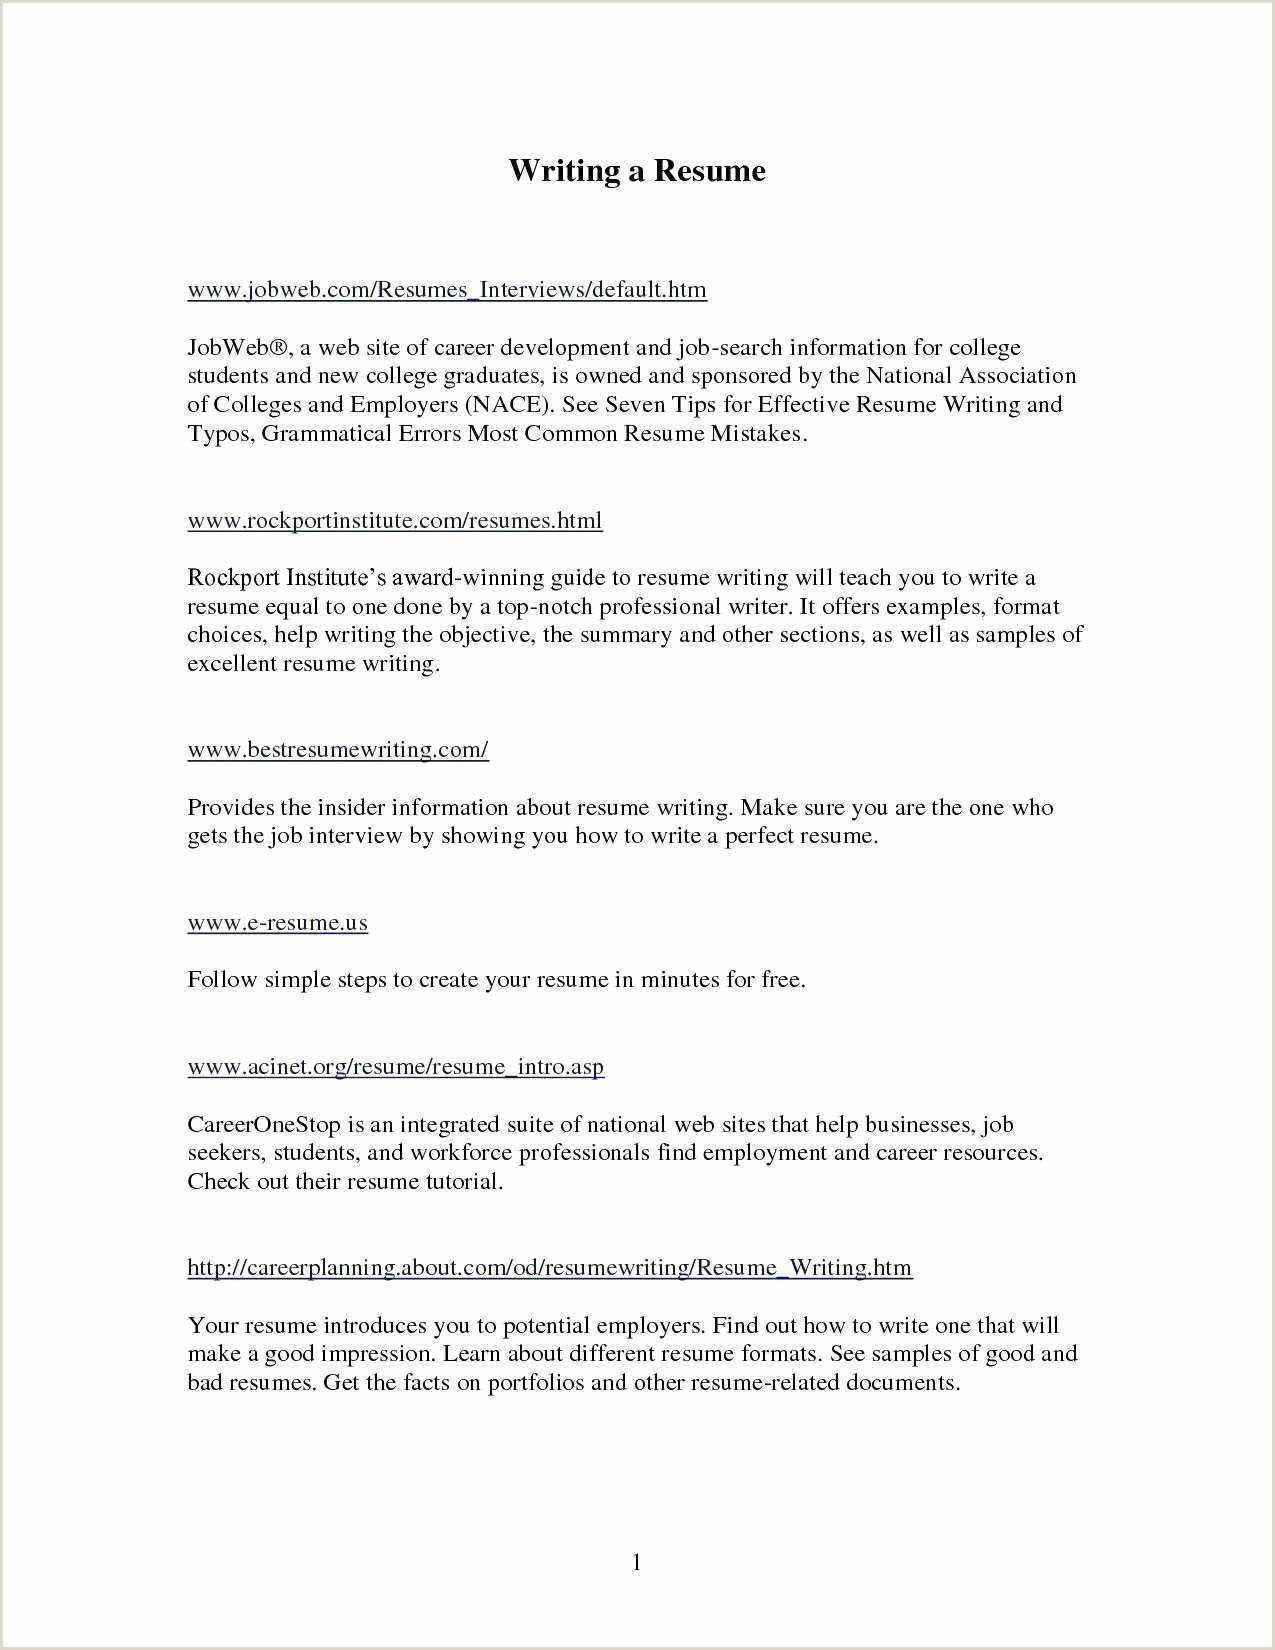 Cv format for Job Experience Sample Resume for Fresh Graduate without Work Experience New